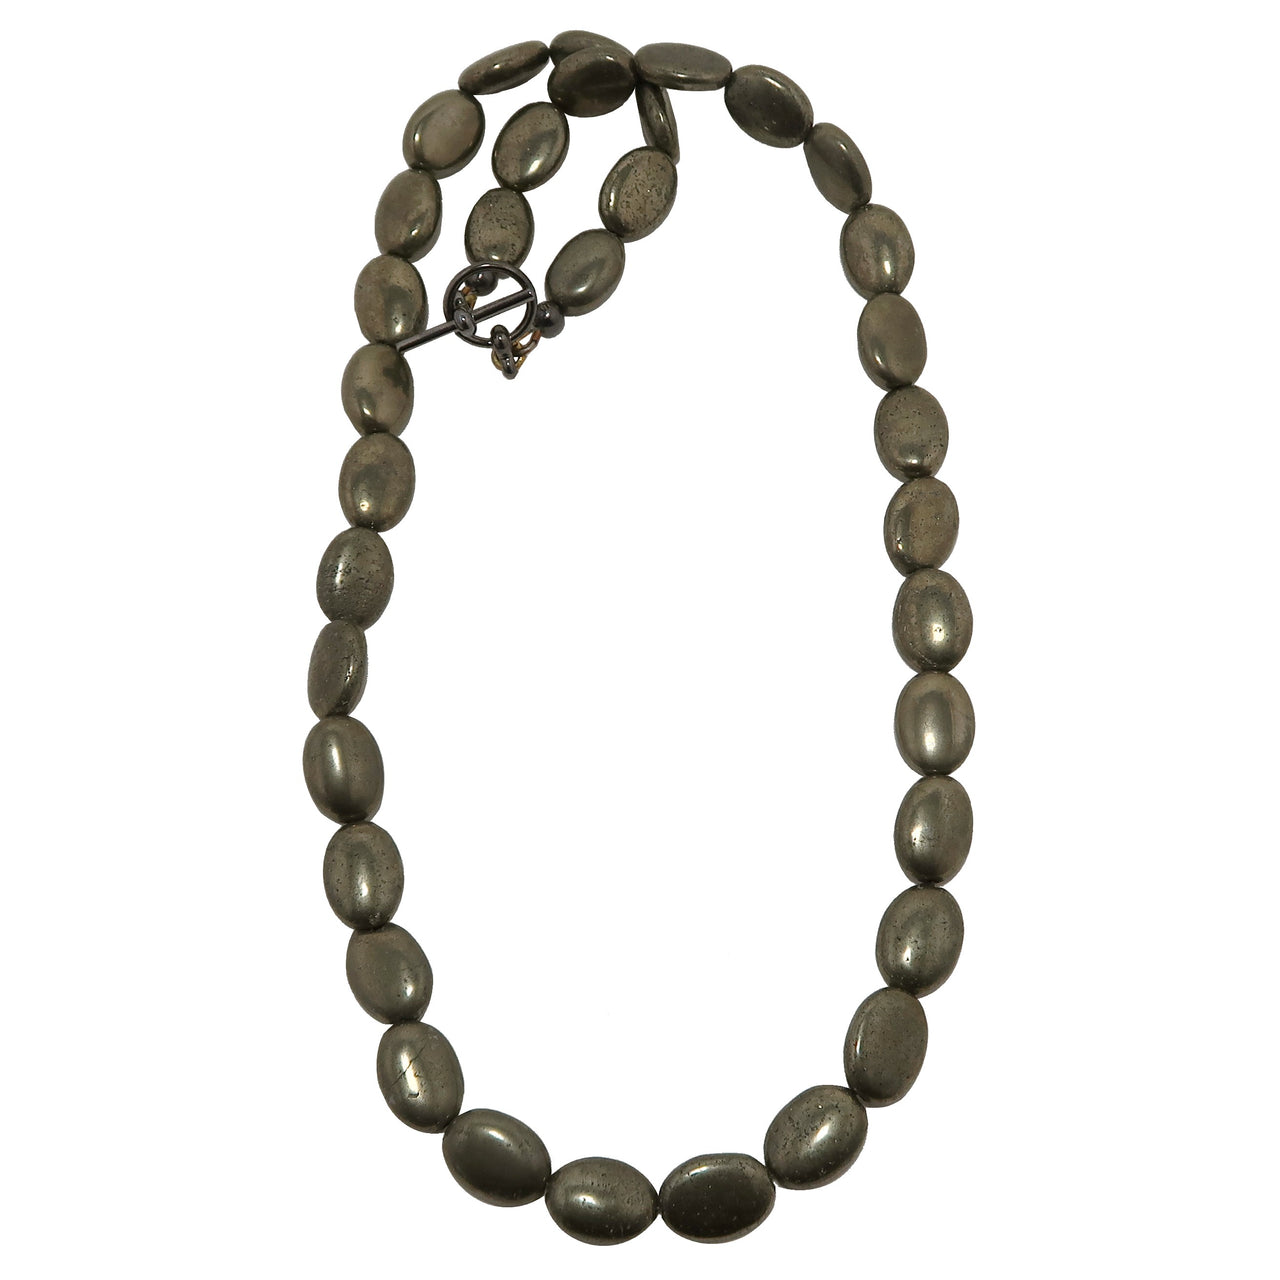 Pyrite Necklace Boutique Metallic Beaded Protection Stone Oval Shiny Fools Gold B04